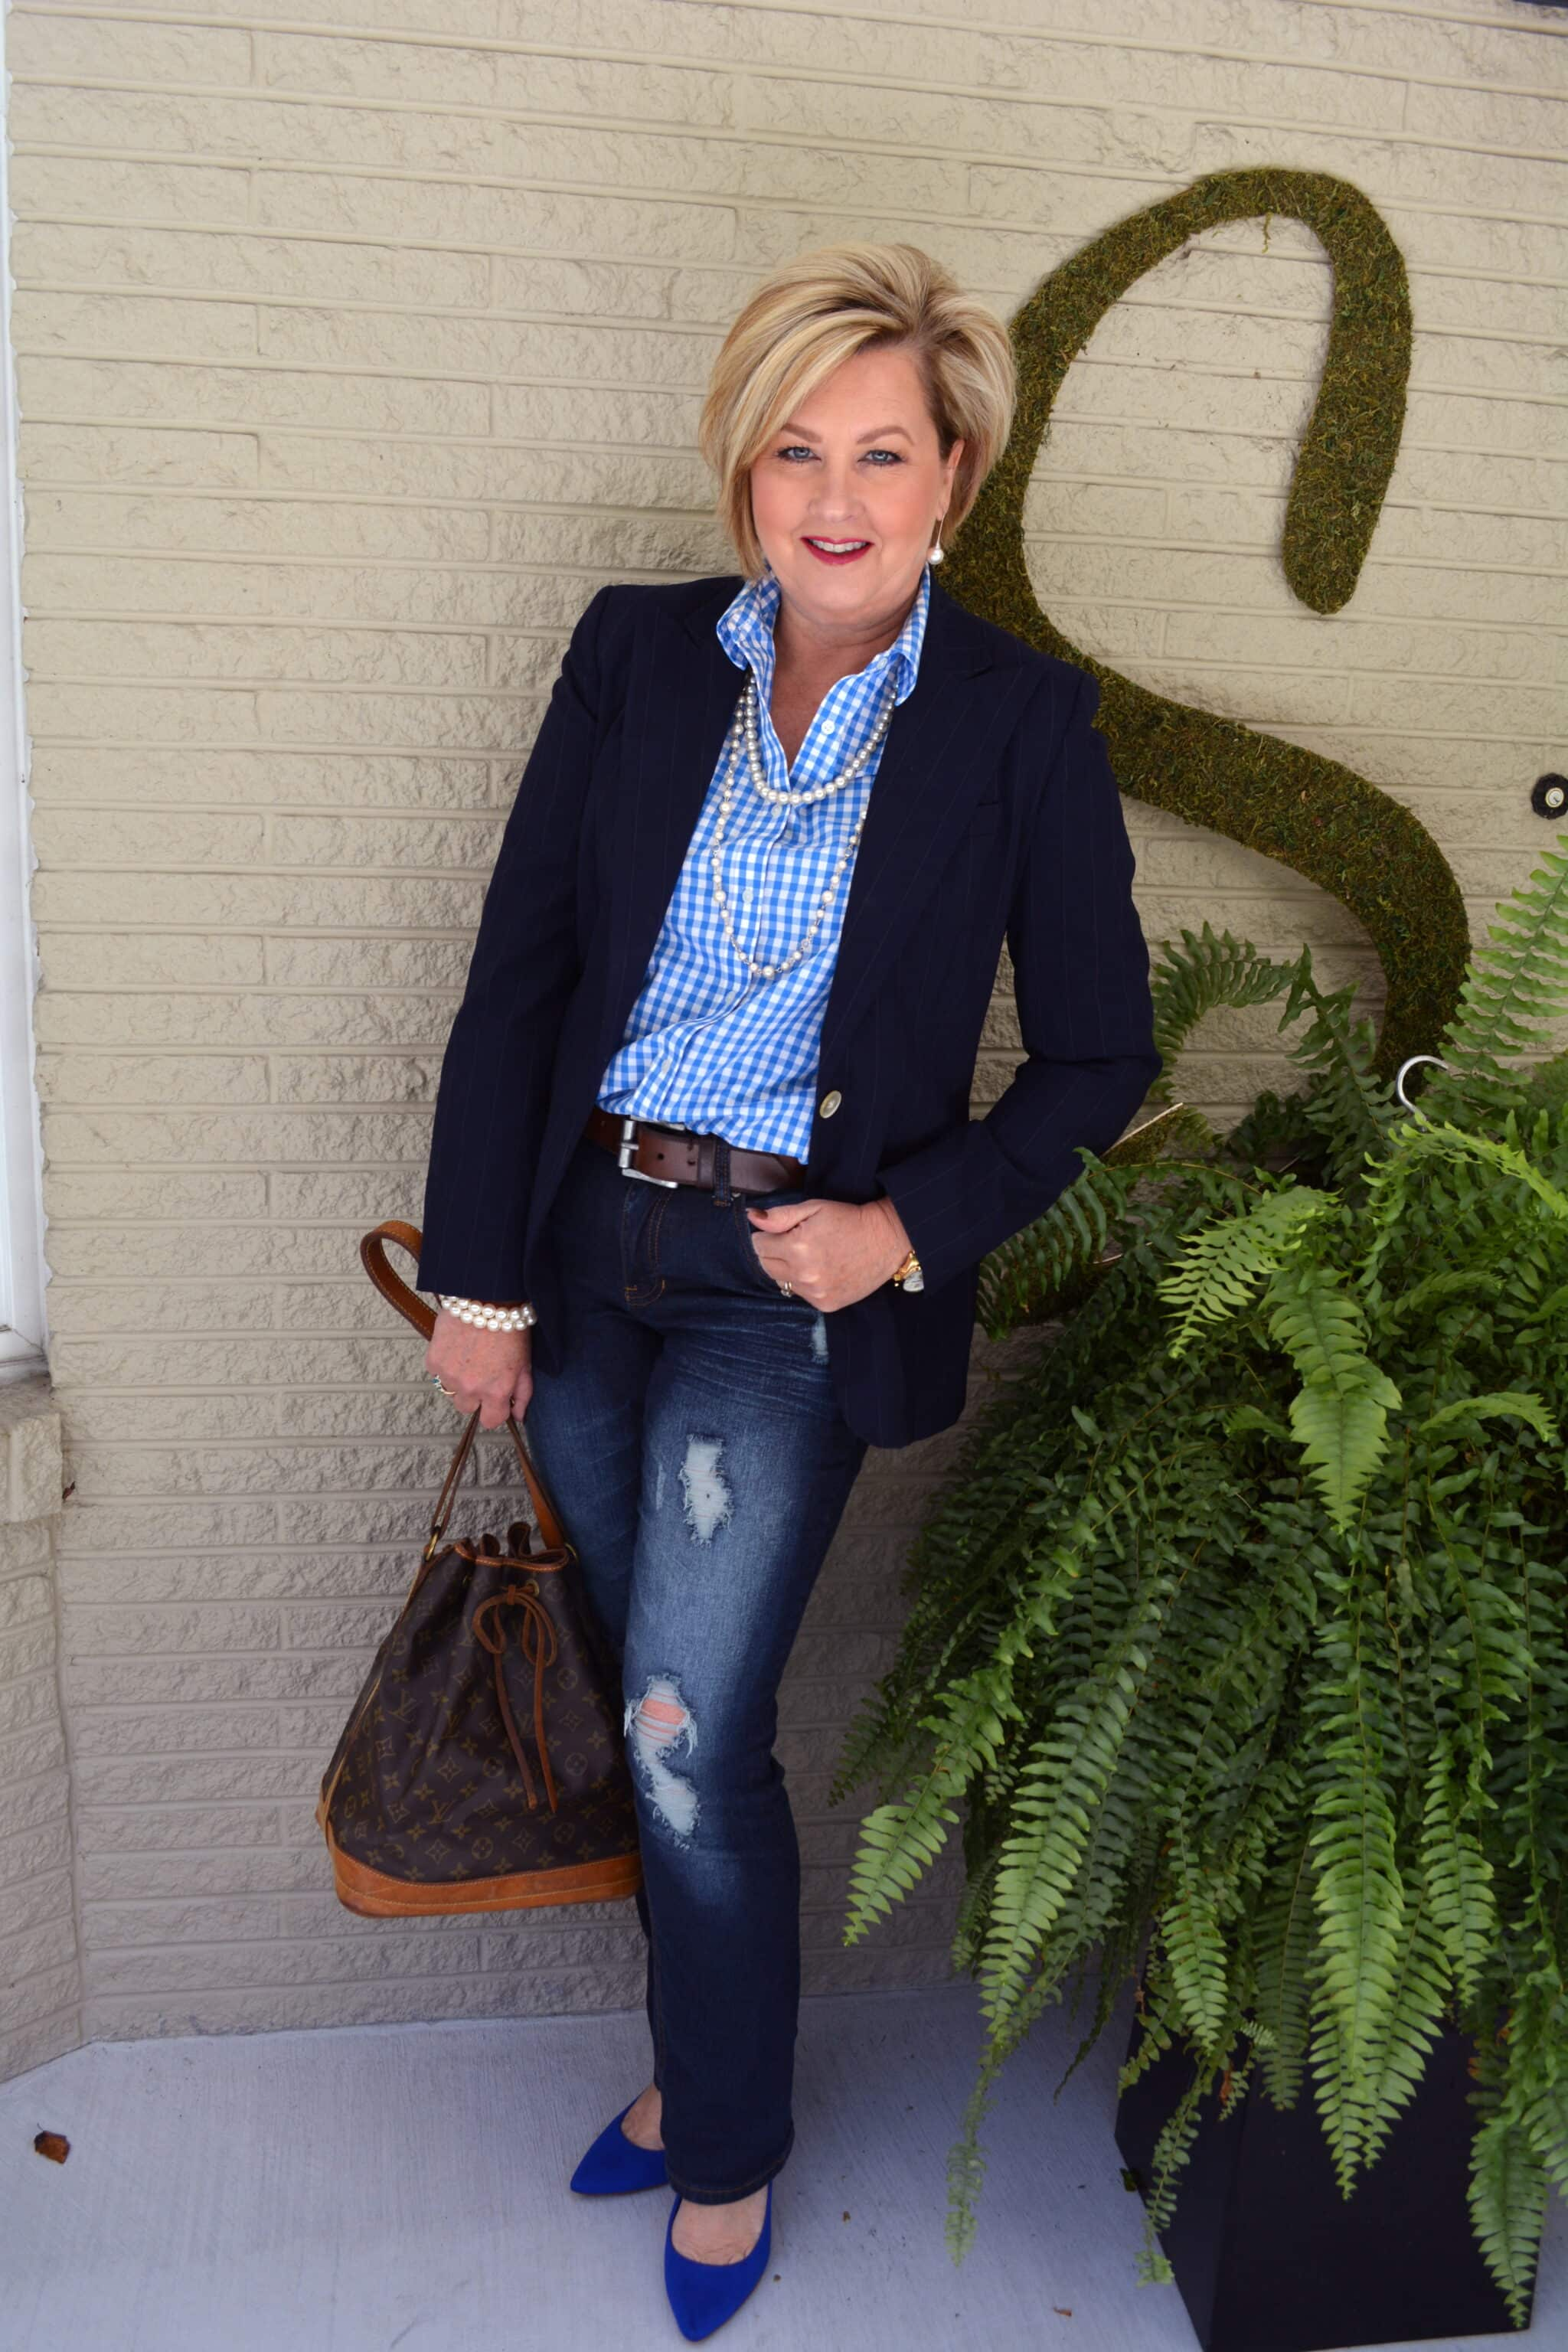 50 Is Not Old | Jeans & Pearls 1